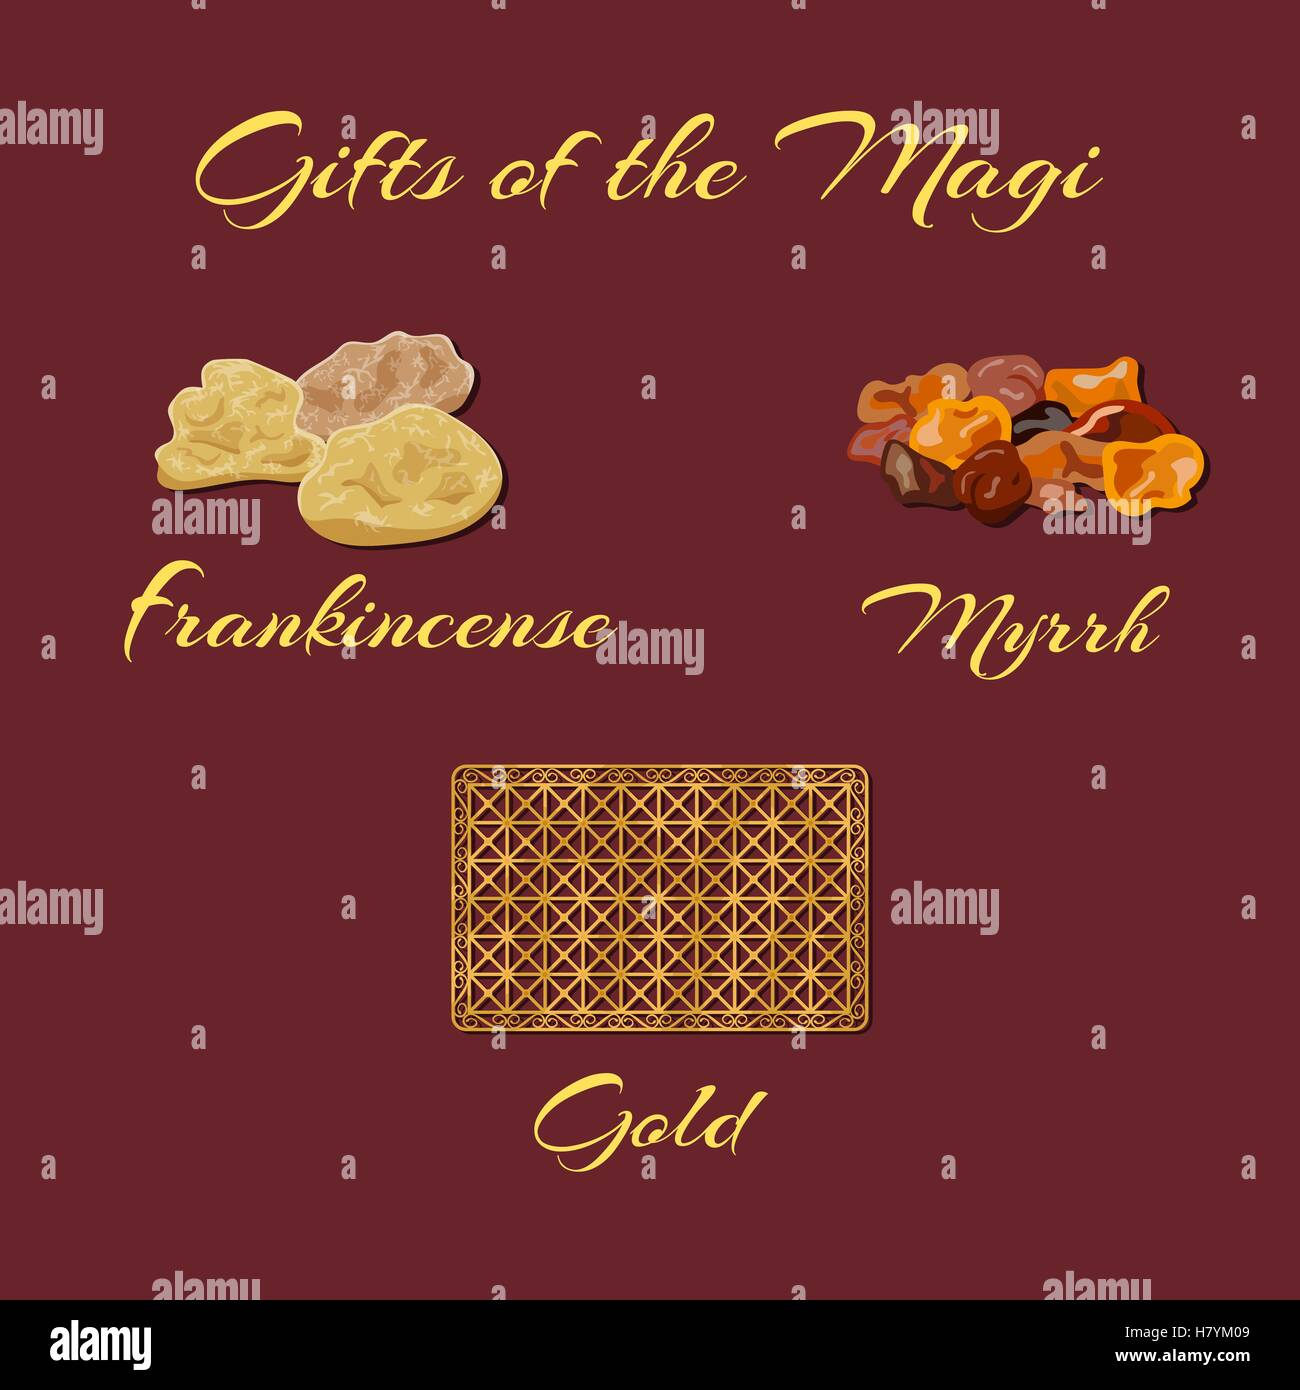 gold frankincense and myrrh gifts of the magi vector illustration stock - Gold Frankincense And Myrrh Christmas Gifts